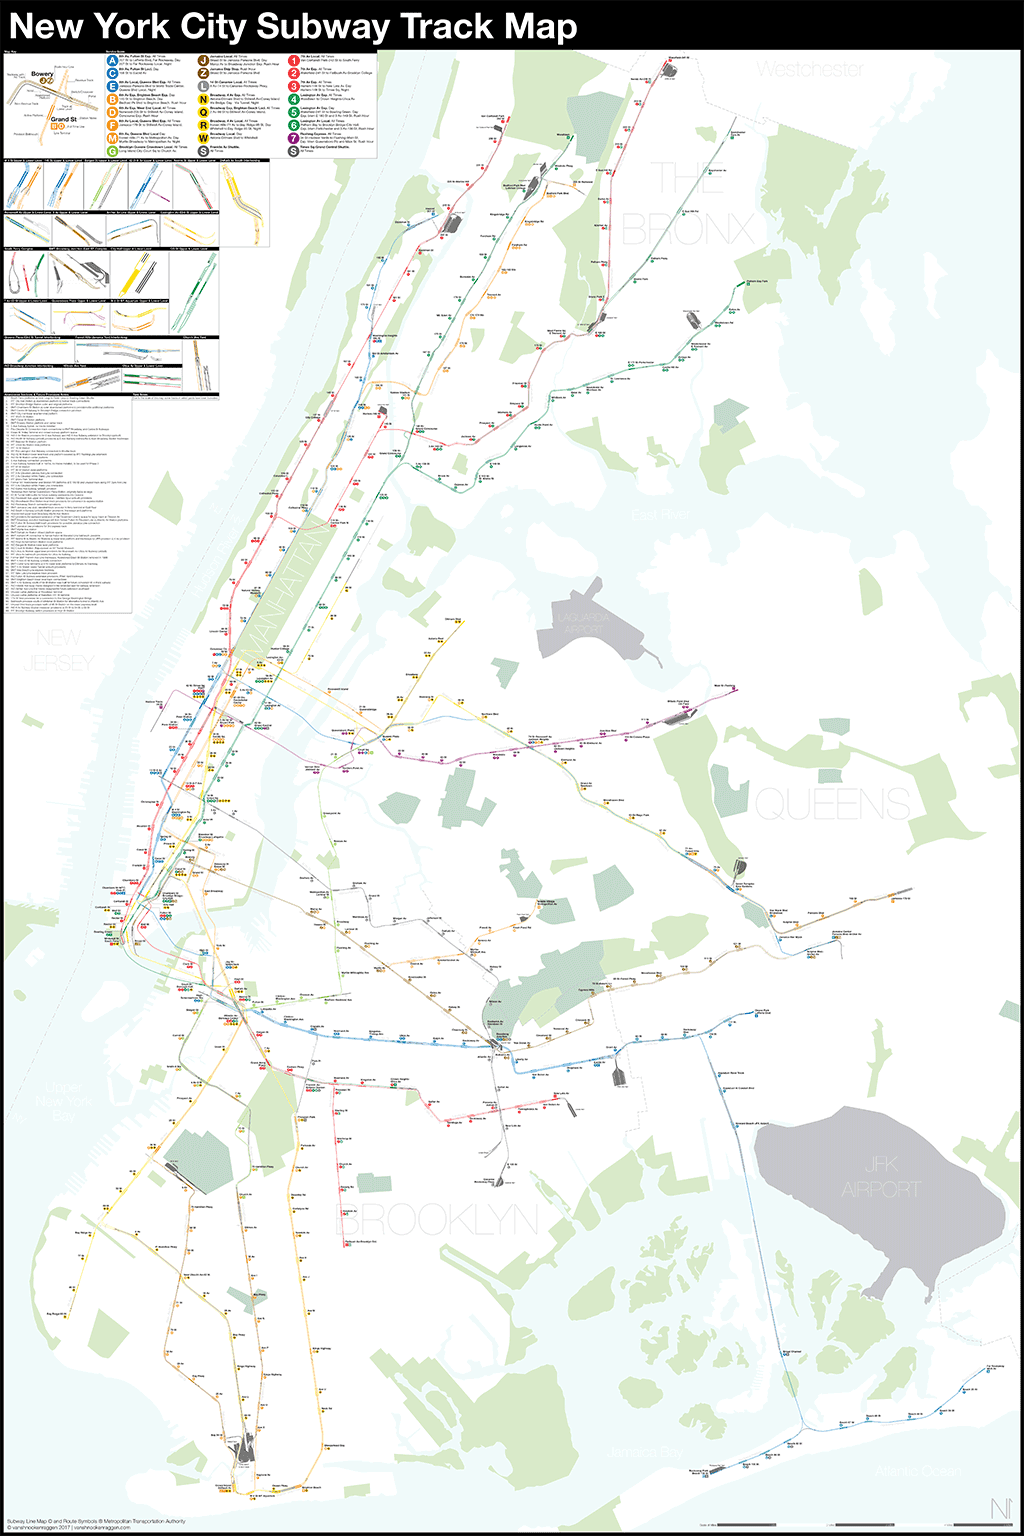 Nyc Simple Subway Map.A Complete And Geographically Accurate Nyc Subway Track Map